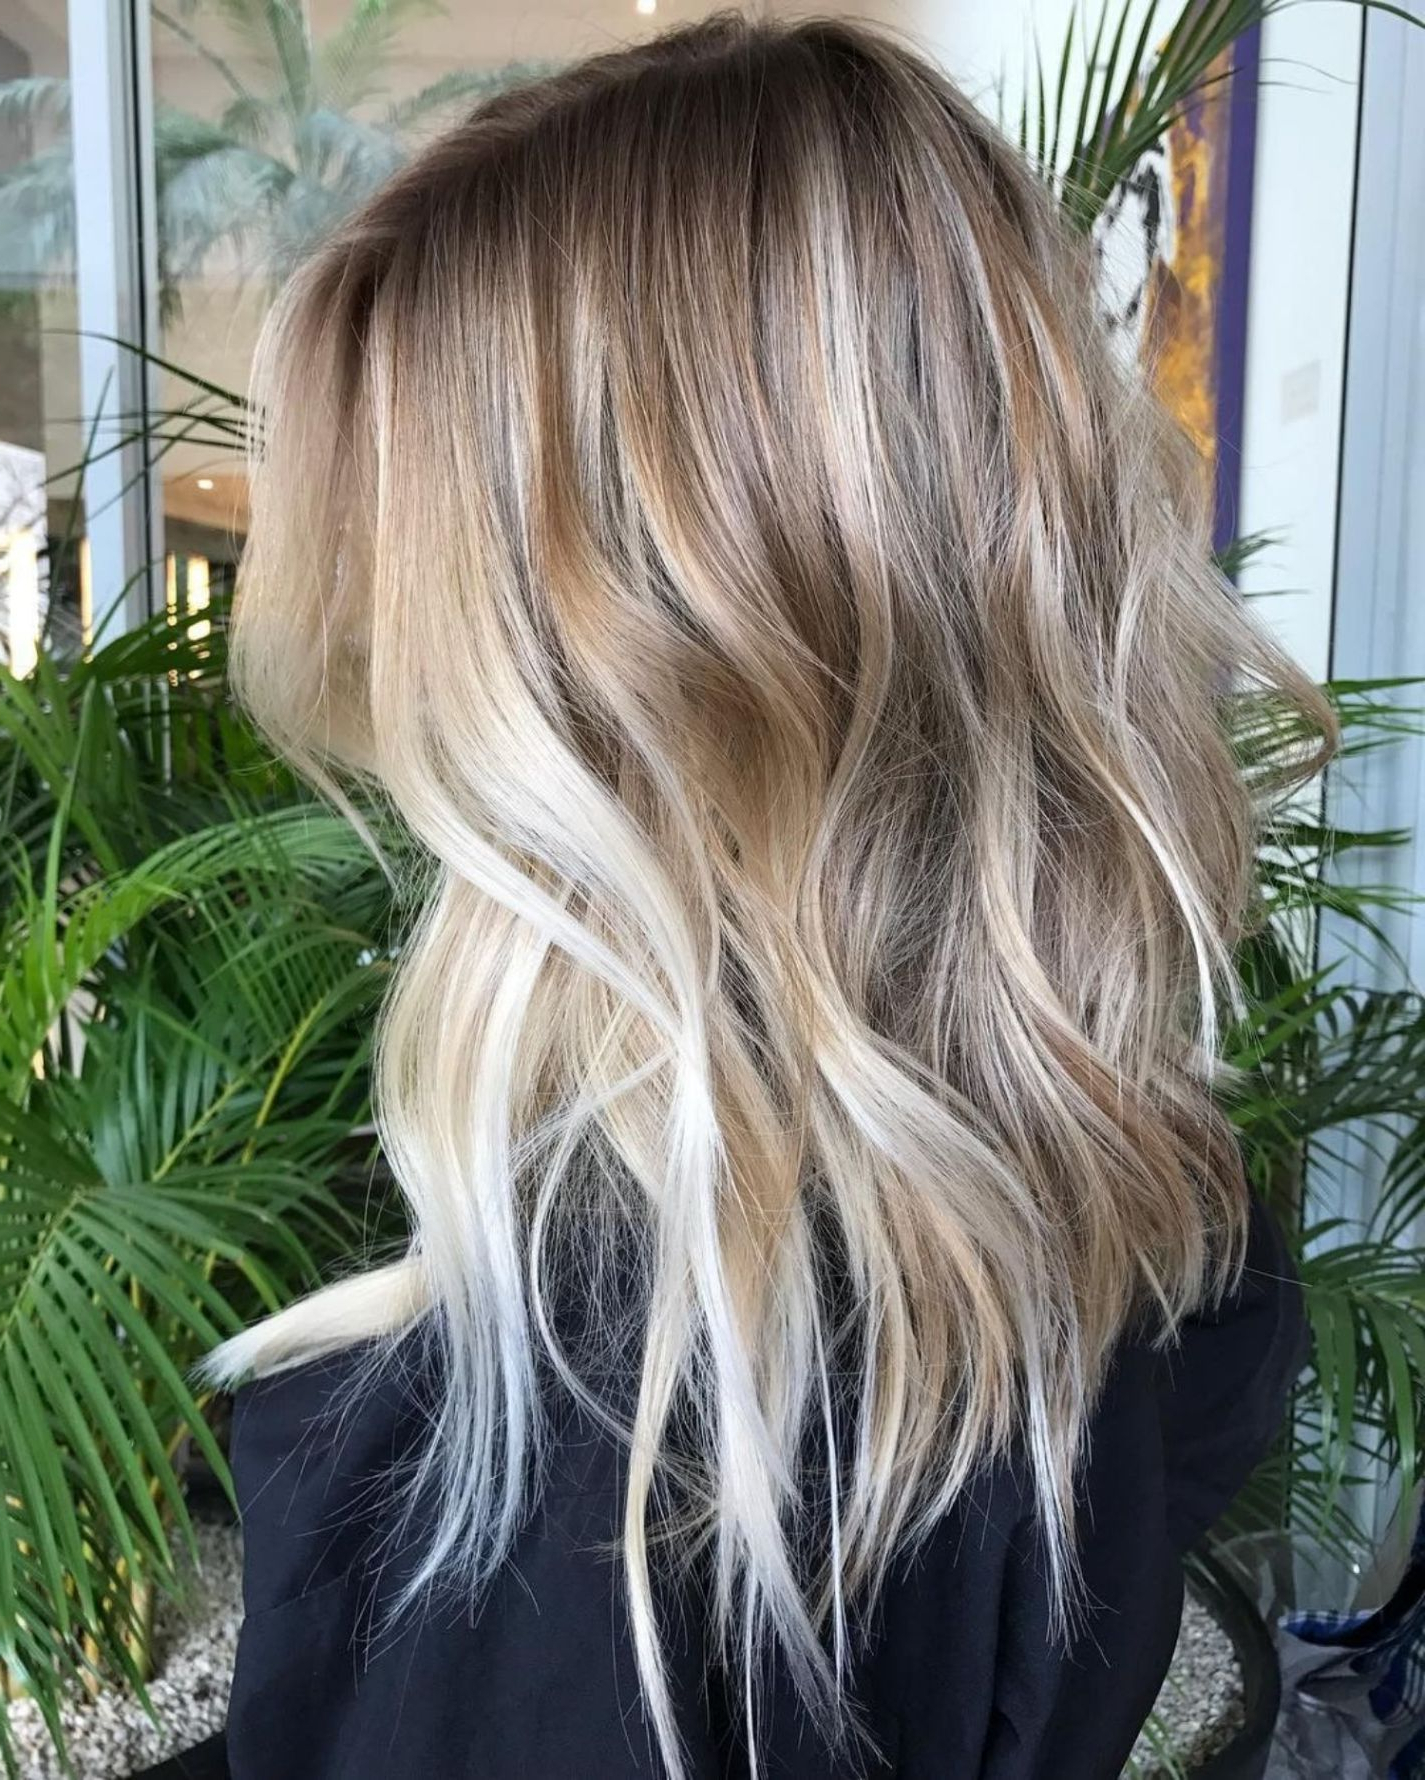 60 Fun And Flattering Medium Hairstyles For Women In  (View 8 of 20)